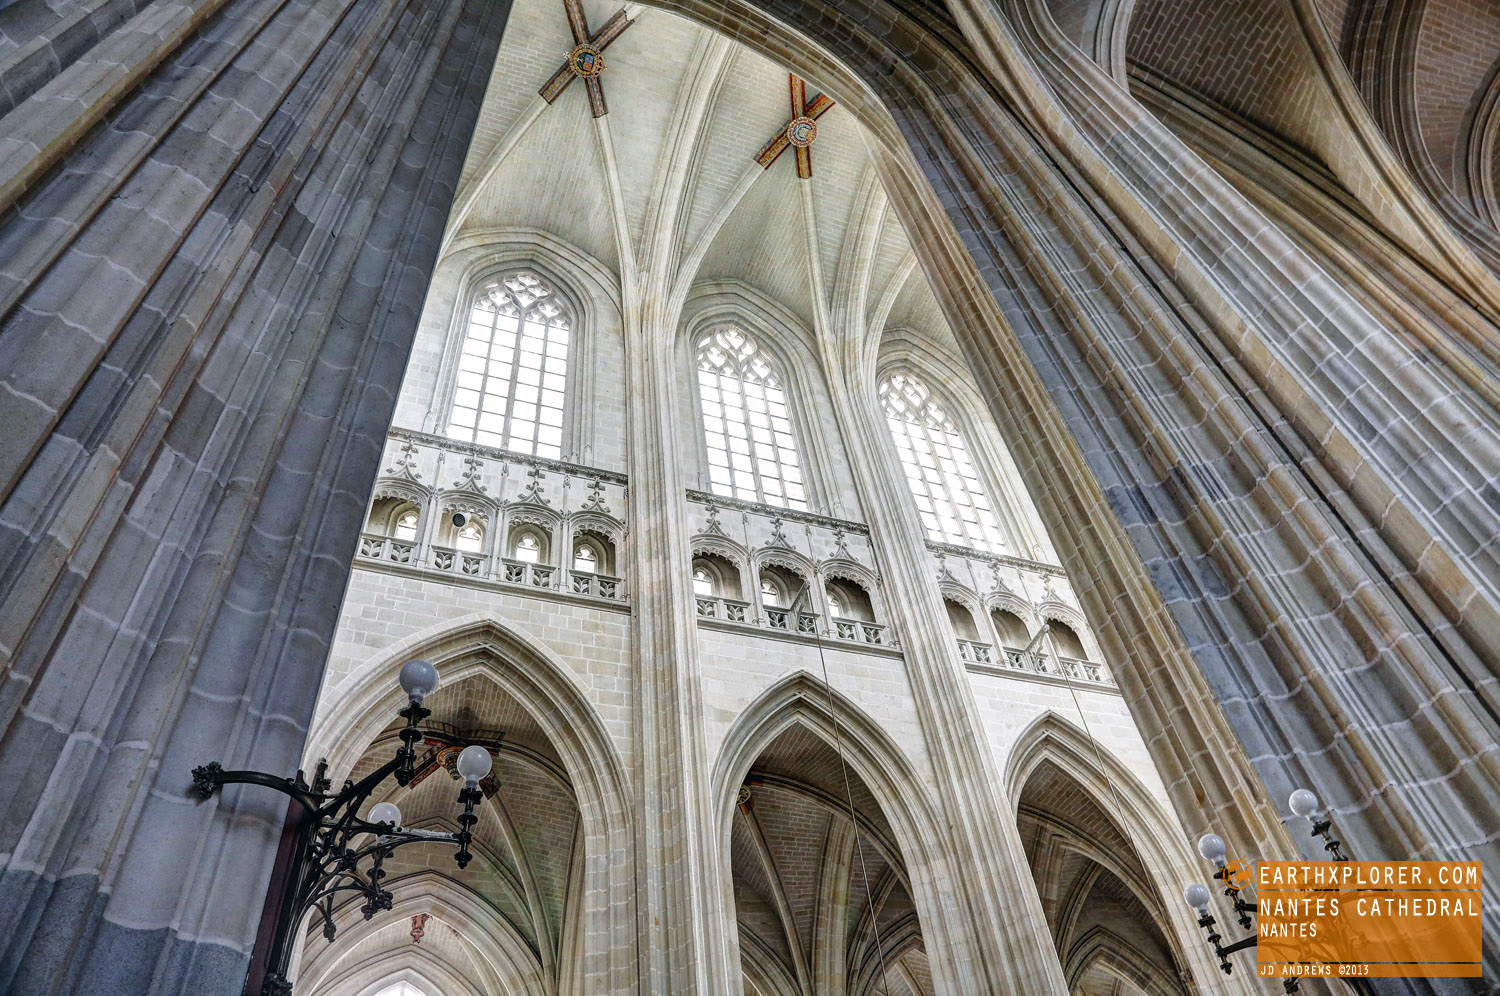 Also known asCathedral of St. Peter and St. Paul inNantes France.